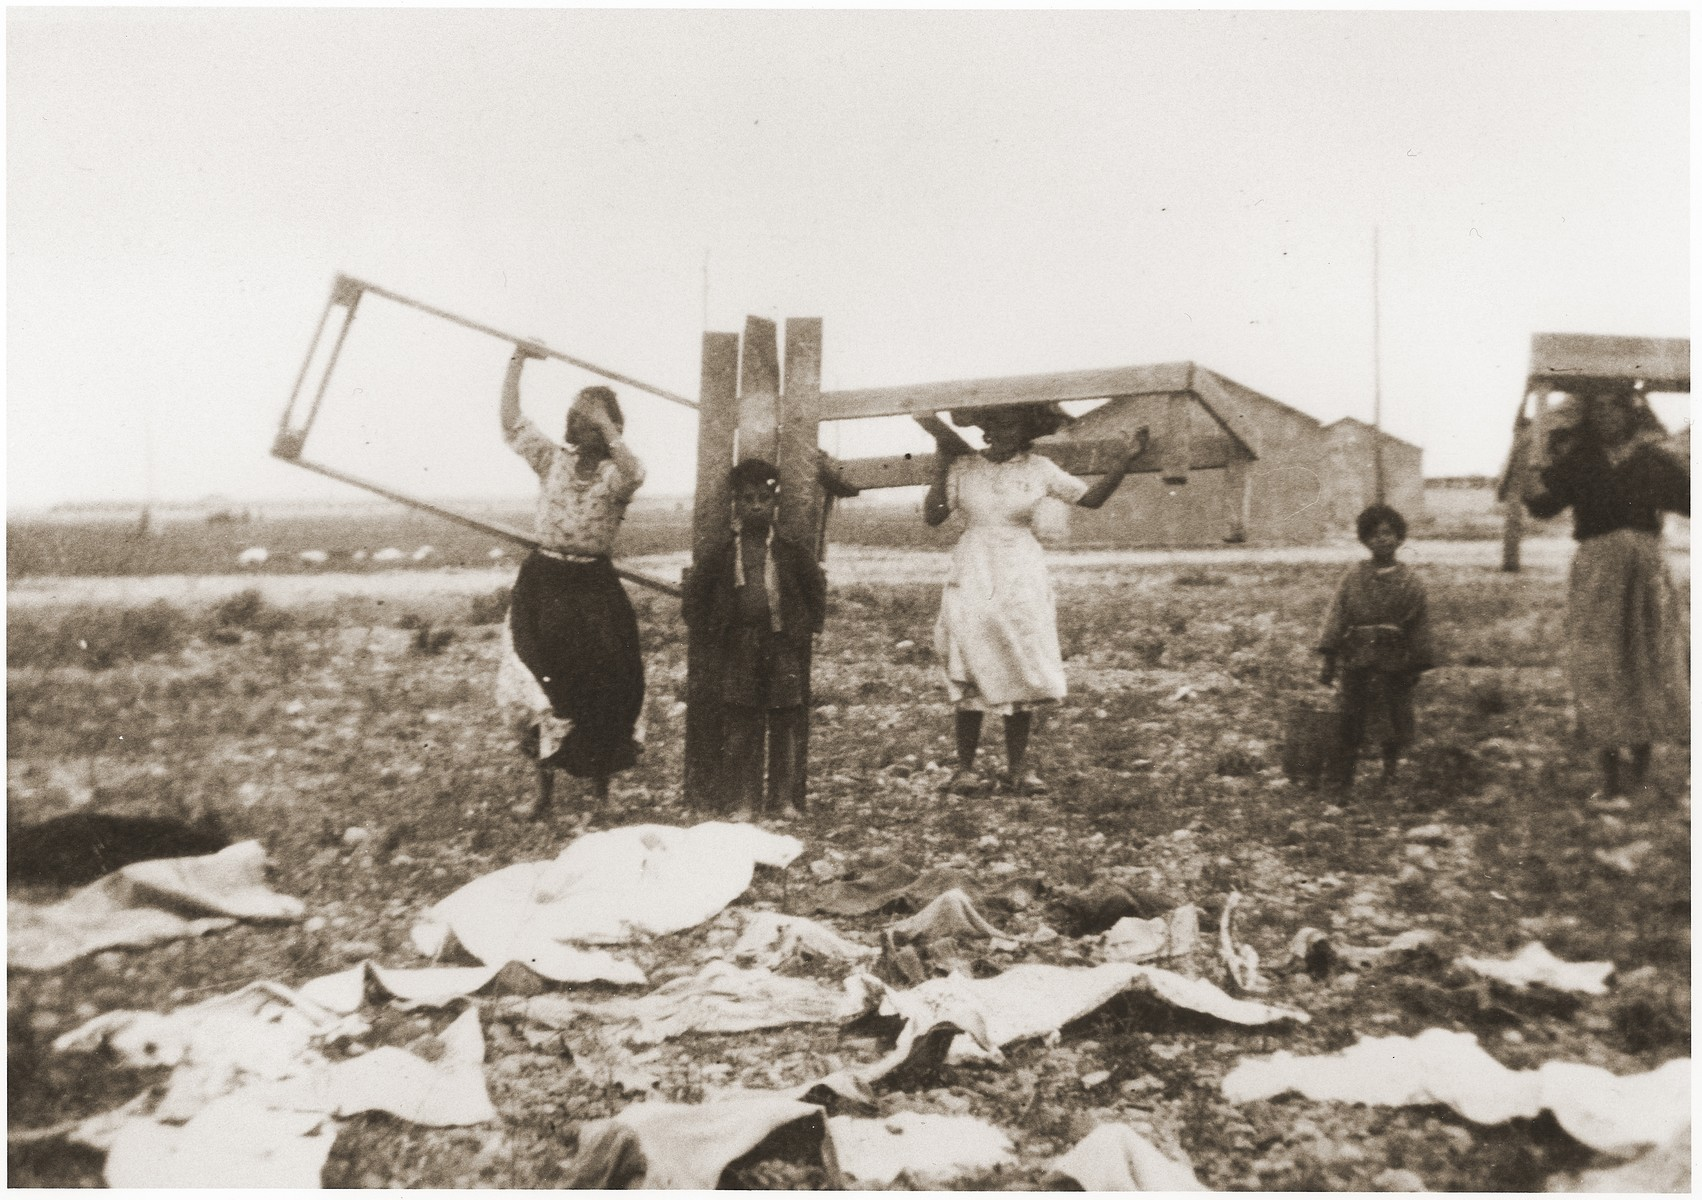 Internees move their bed frames to new quarters in the Rivesaltes internment camp.